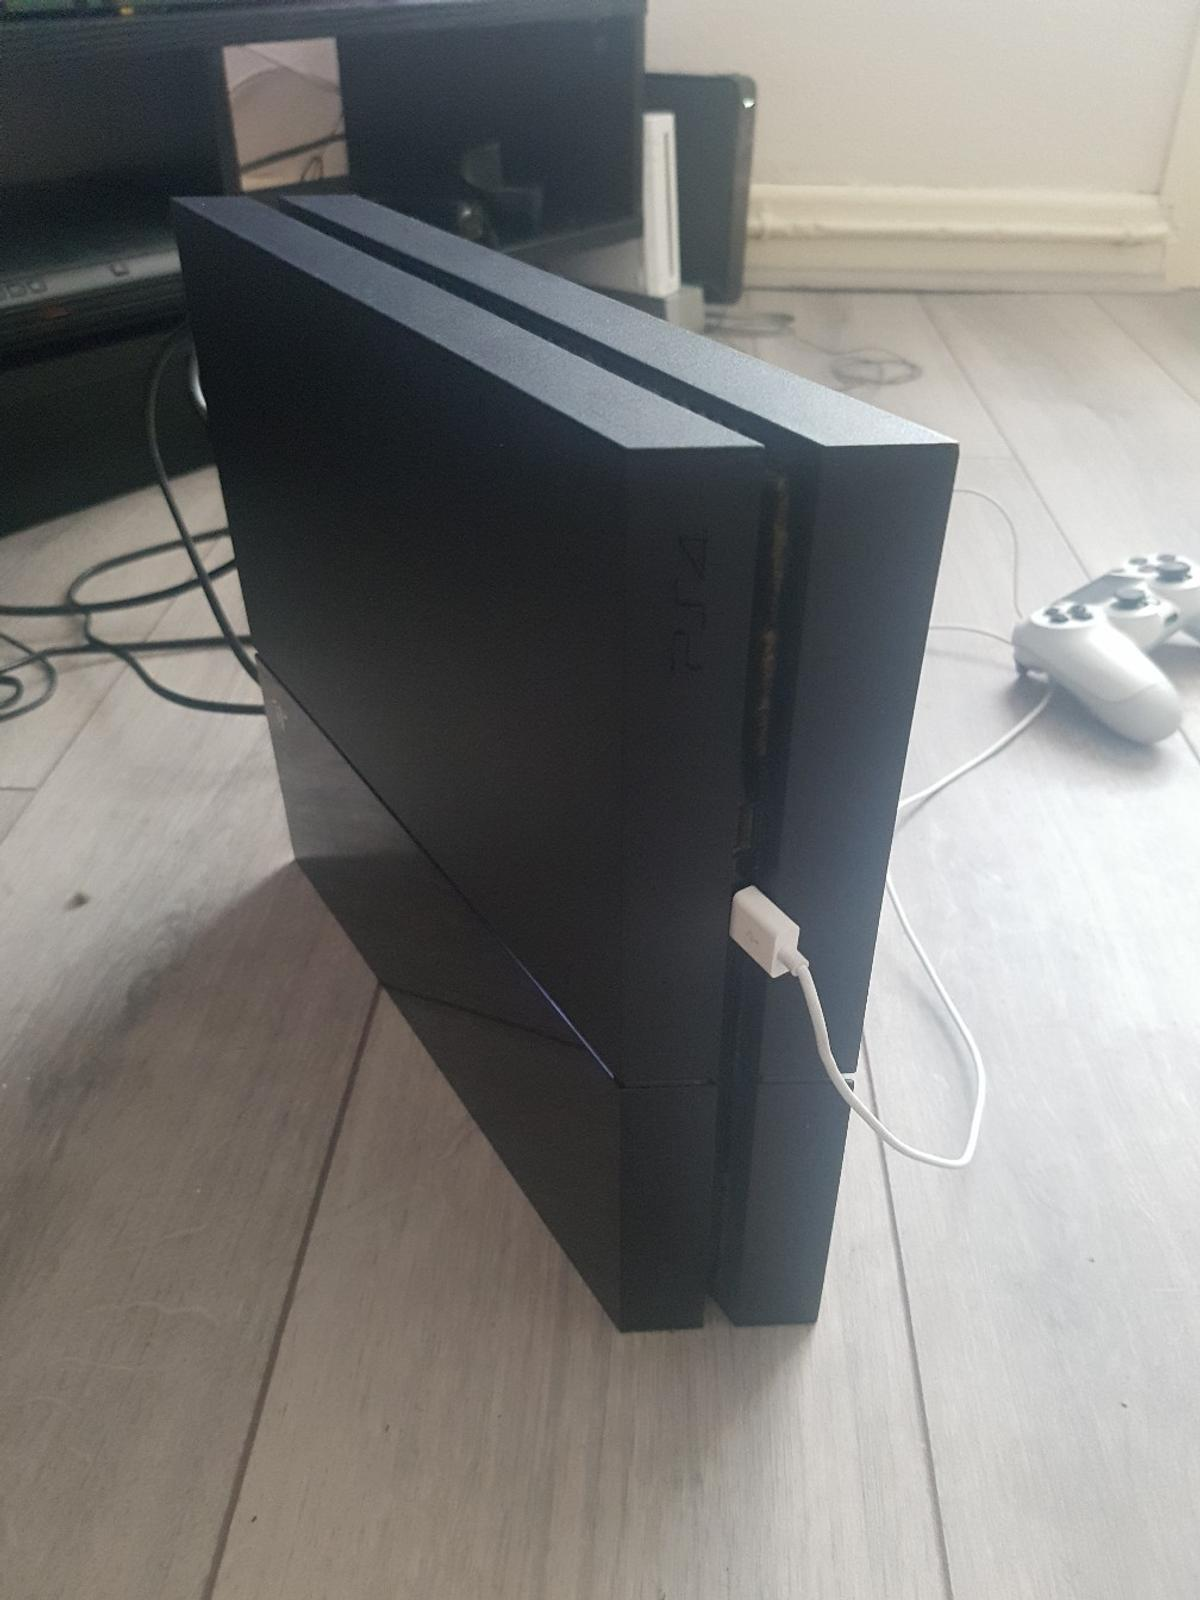 PS4 (faulty)